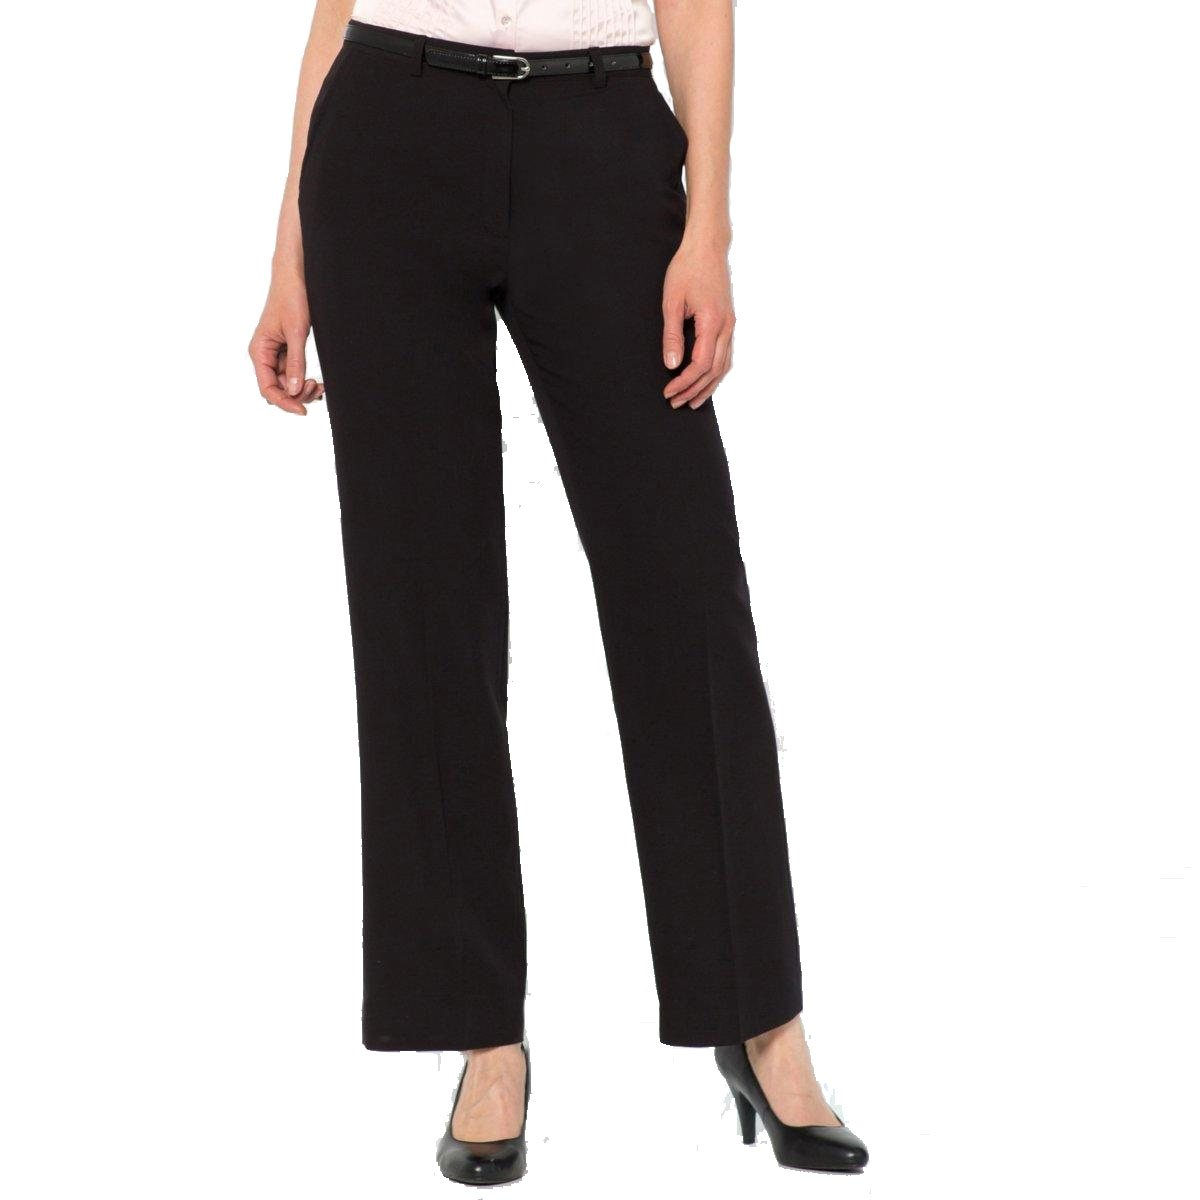 La Redoute Womens Straight Trousers Black Size Us 8 - Fr 38